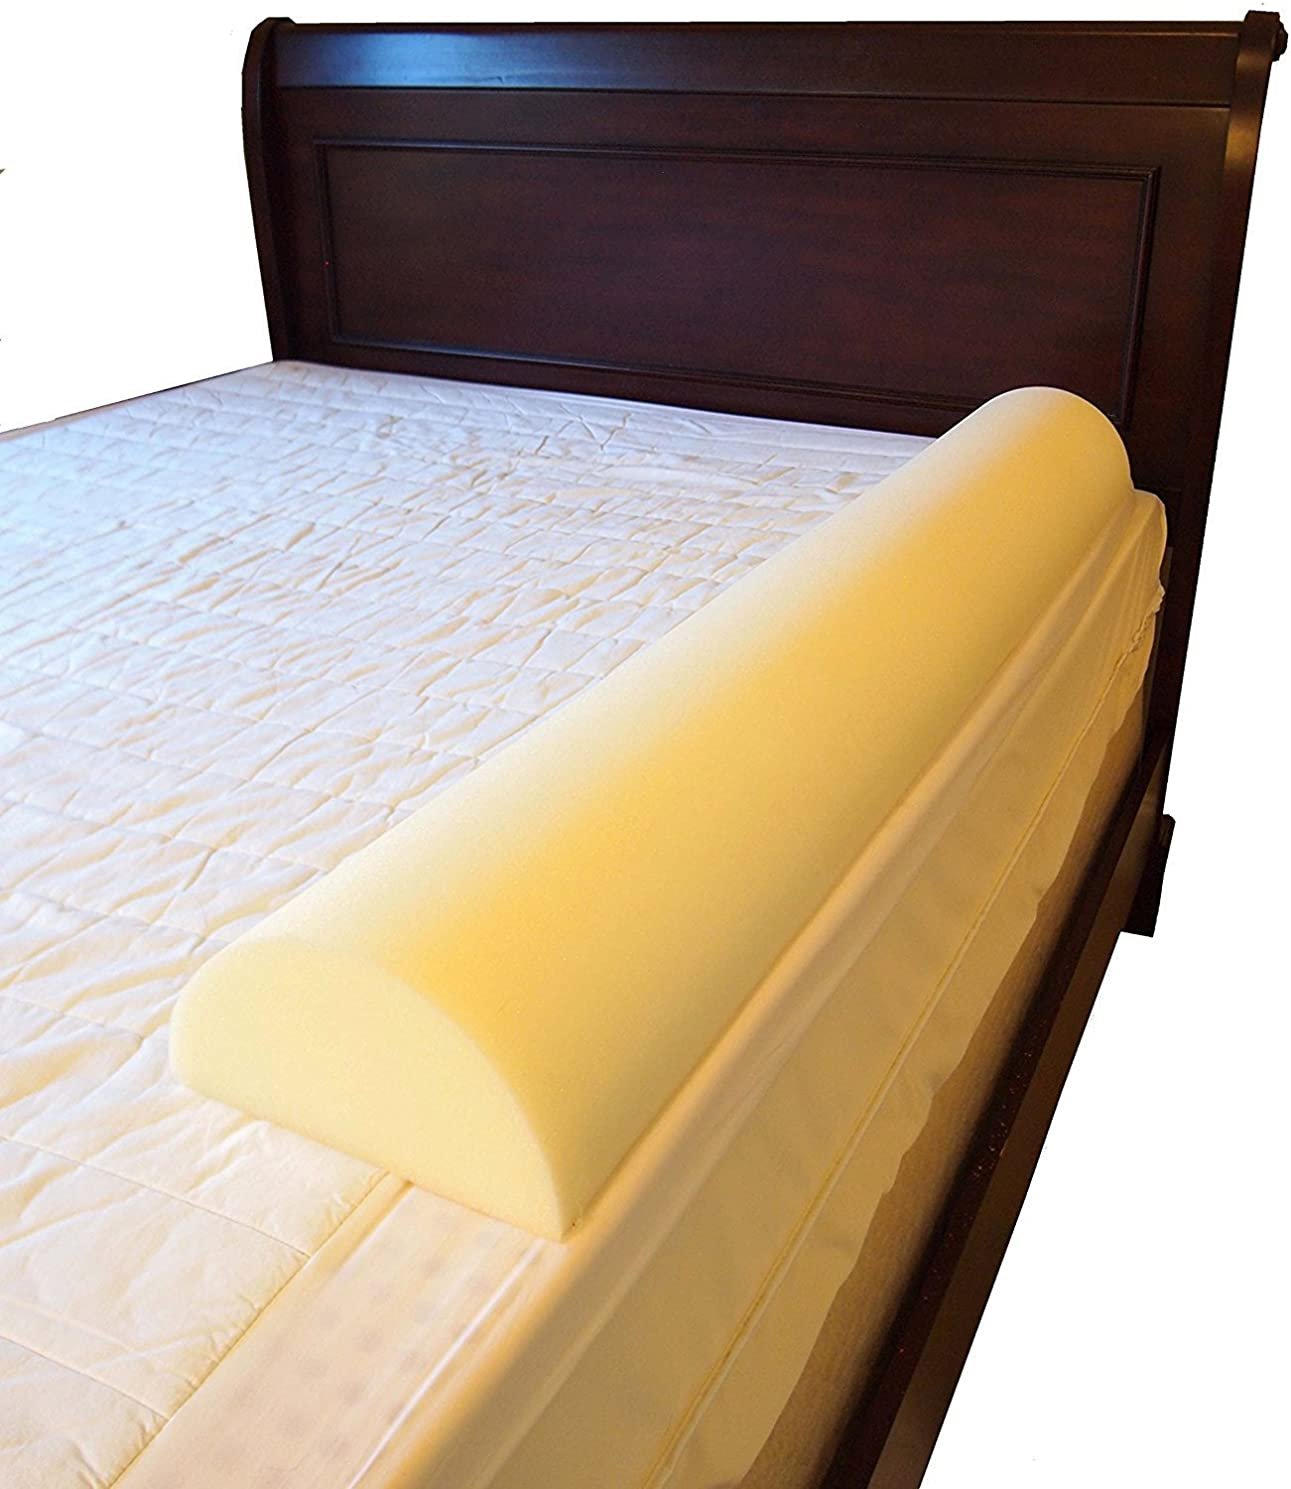 Put Big Girl/Boy Semicircle Bed Rail Bumper Pad for Toddler ((Set of 2) 7 inch by 51 inch Semicircle)